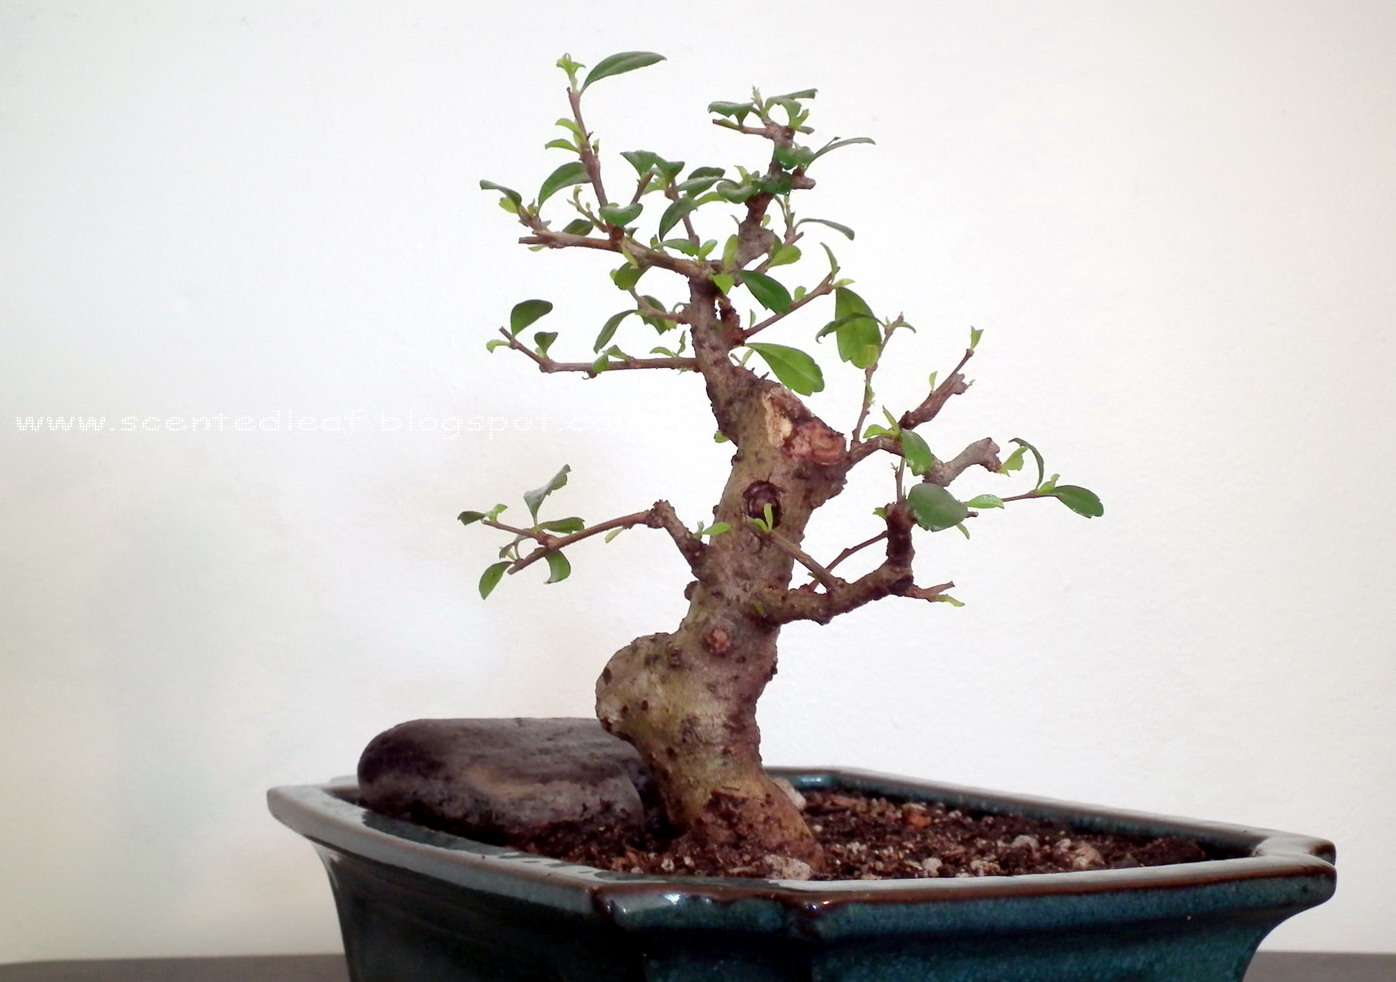 Scented Leaf Sudowoodo Fukien Tea Bonsai